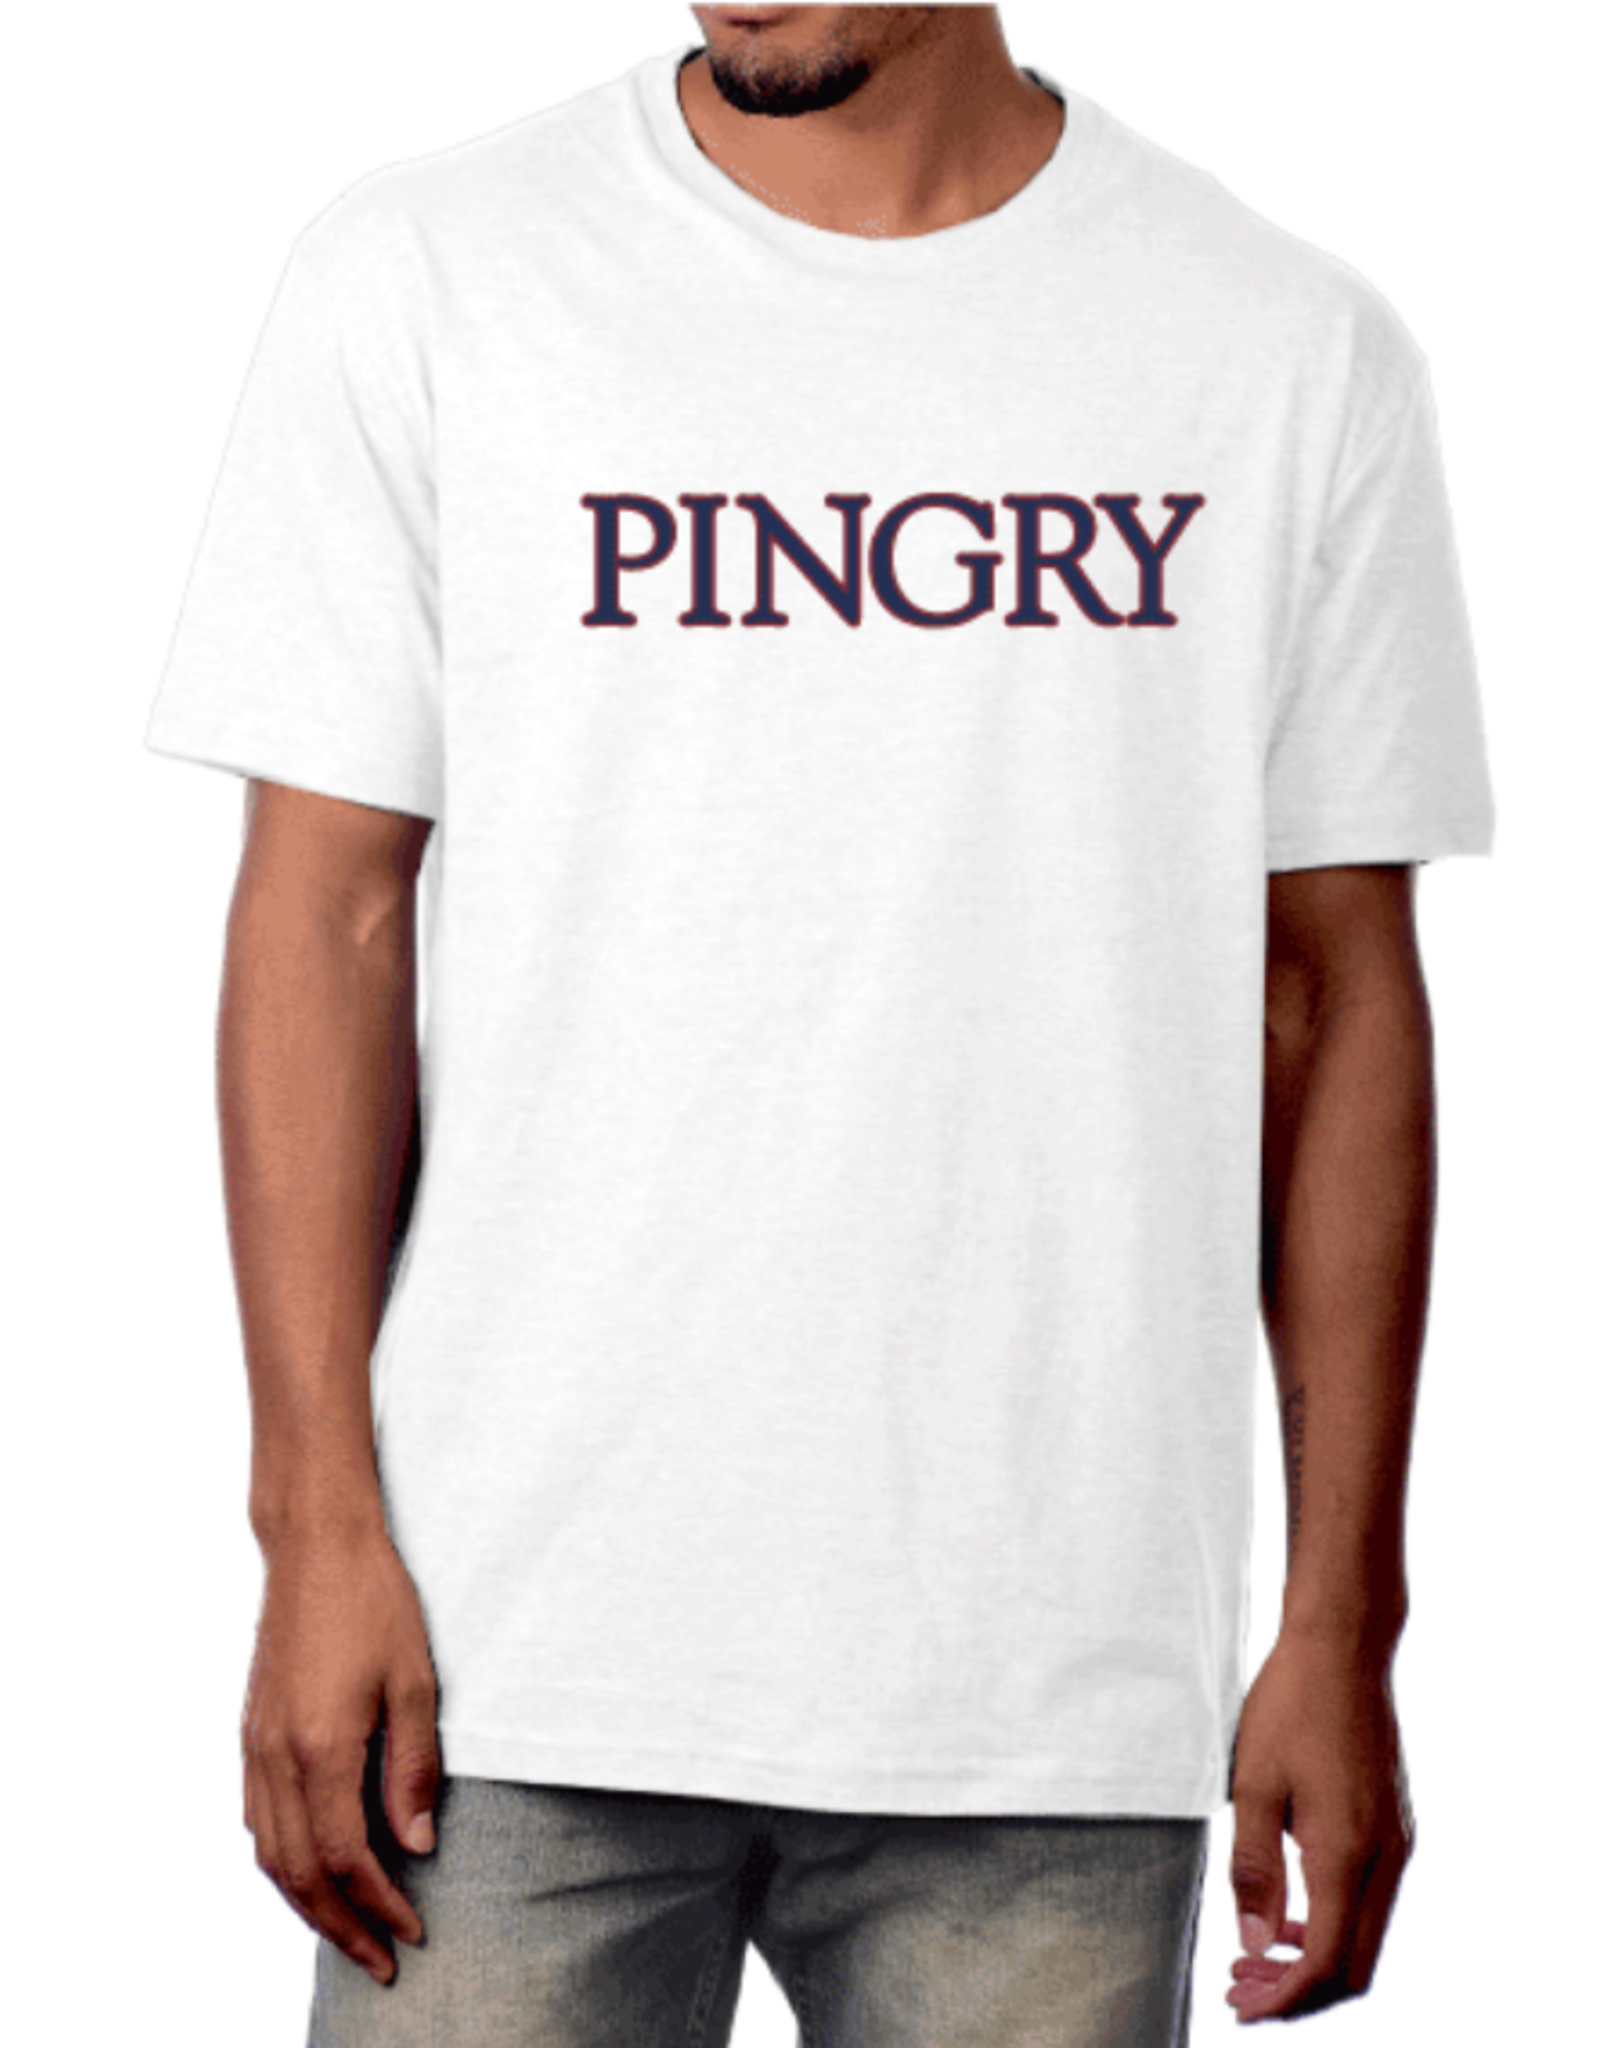 Basic Tee with Pingry logo